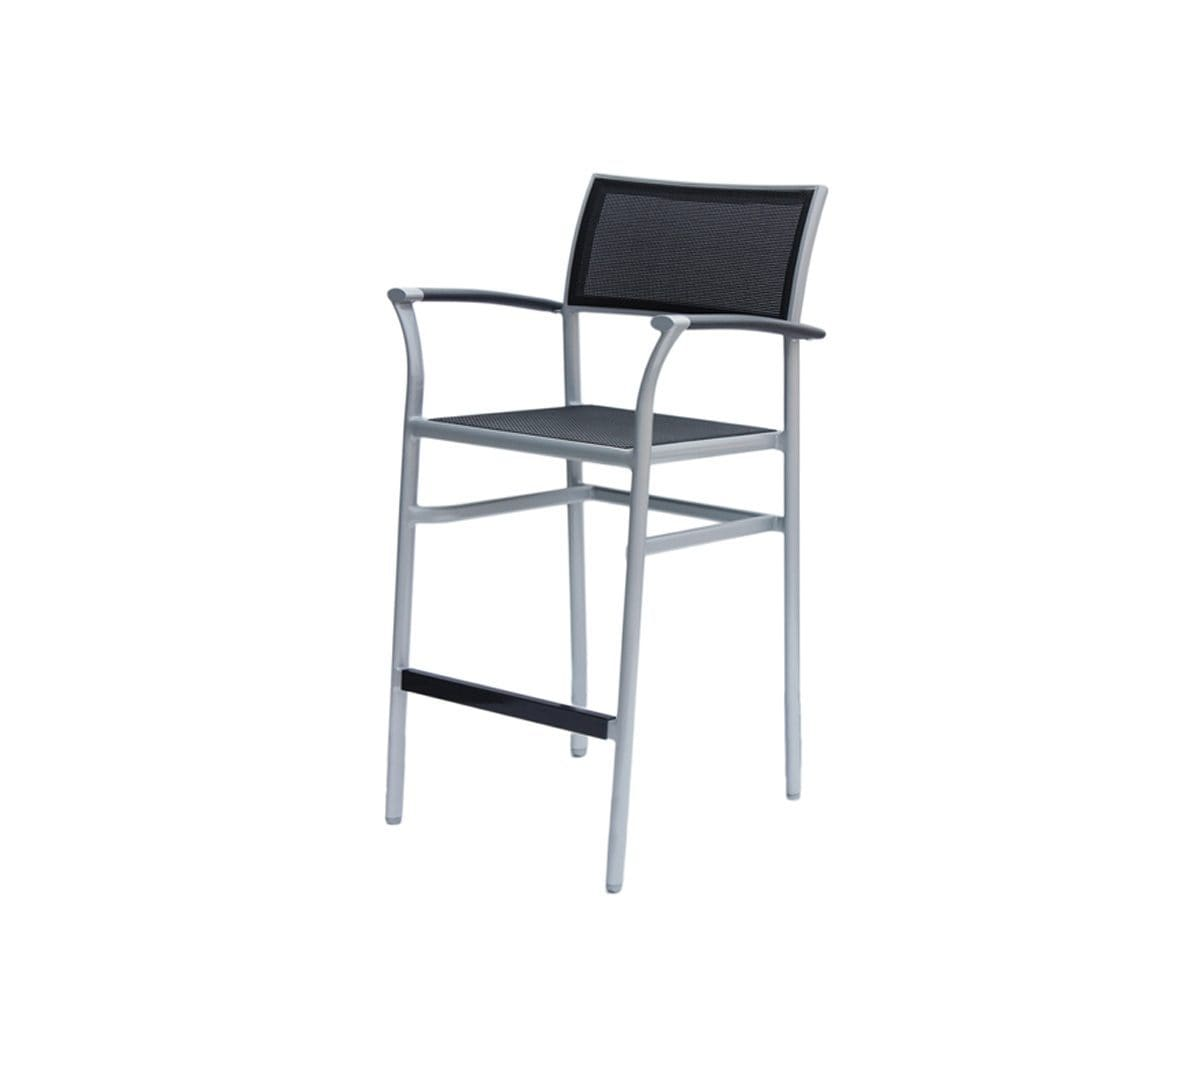 Ratana Bar Chair New Roma Sling Bar Chair w/Arm